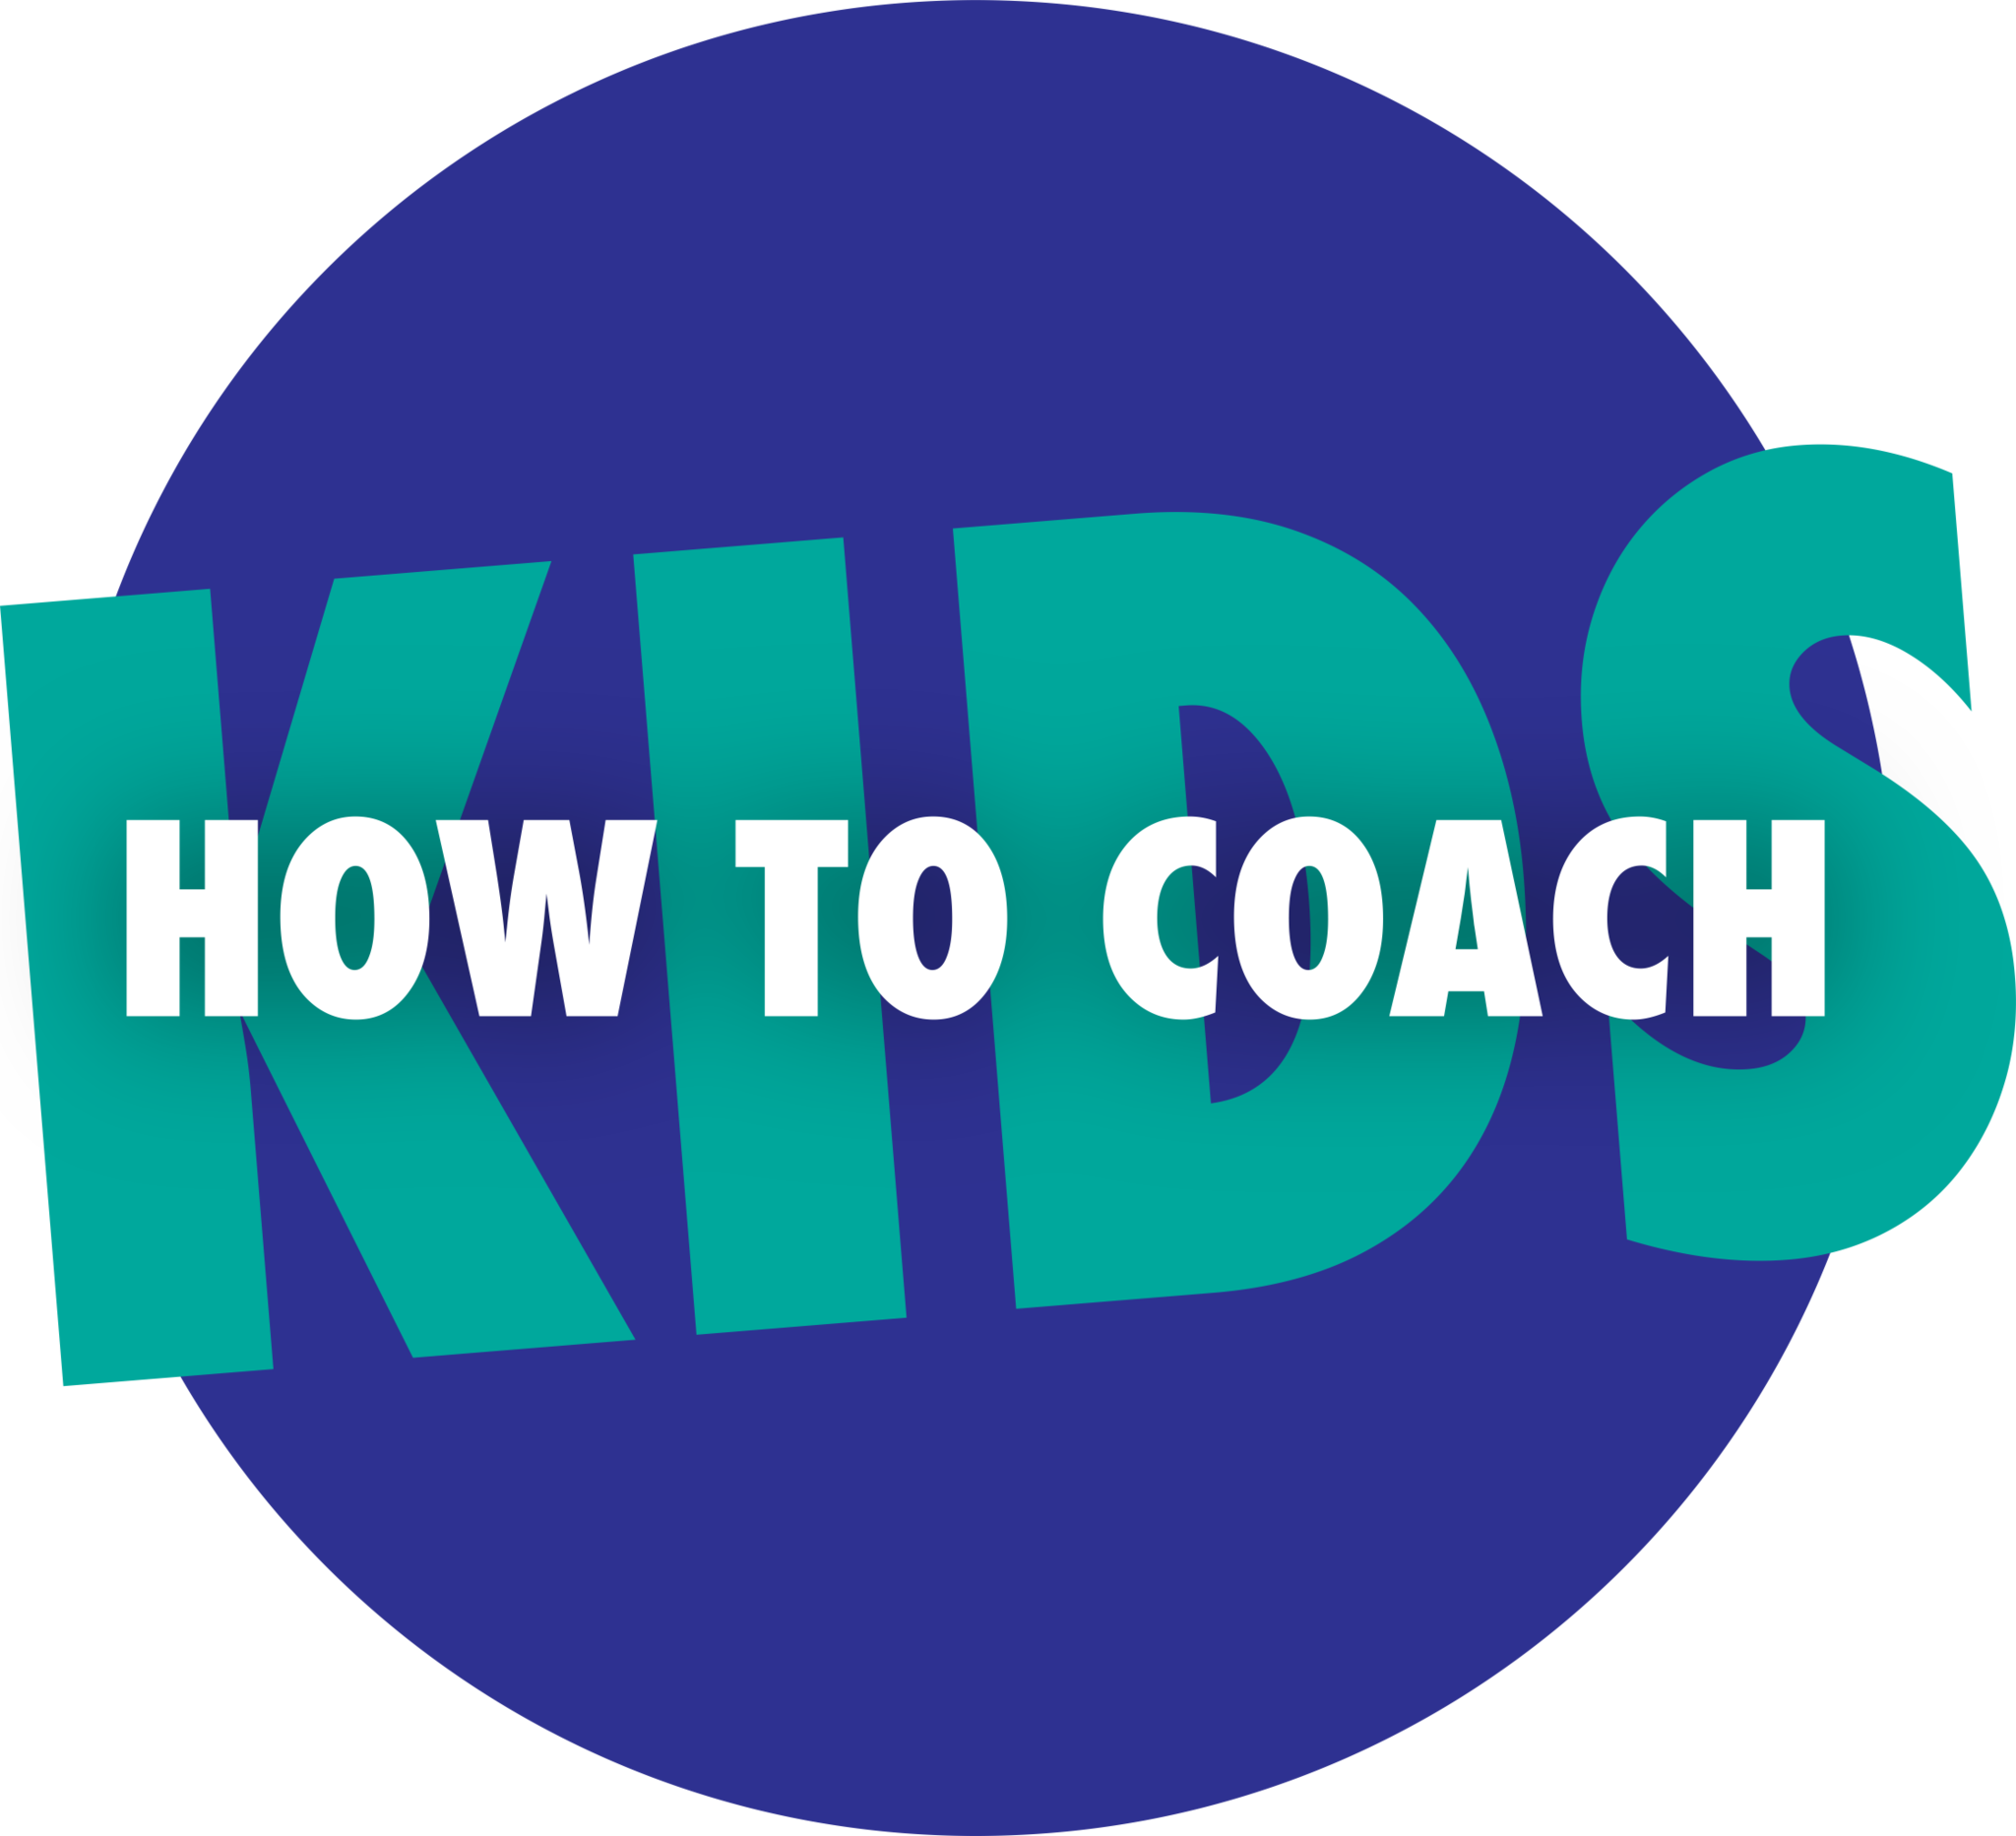 How to Coach Kids graphic.png